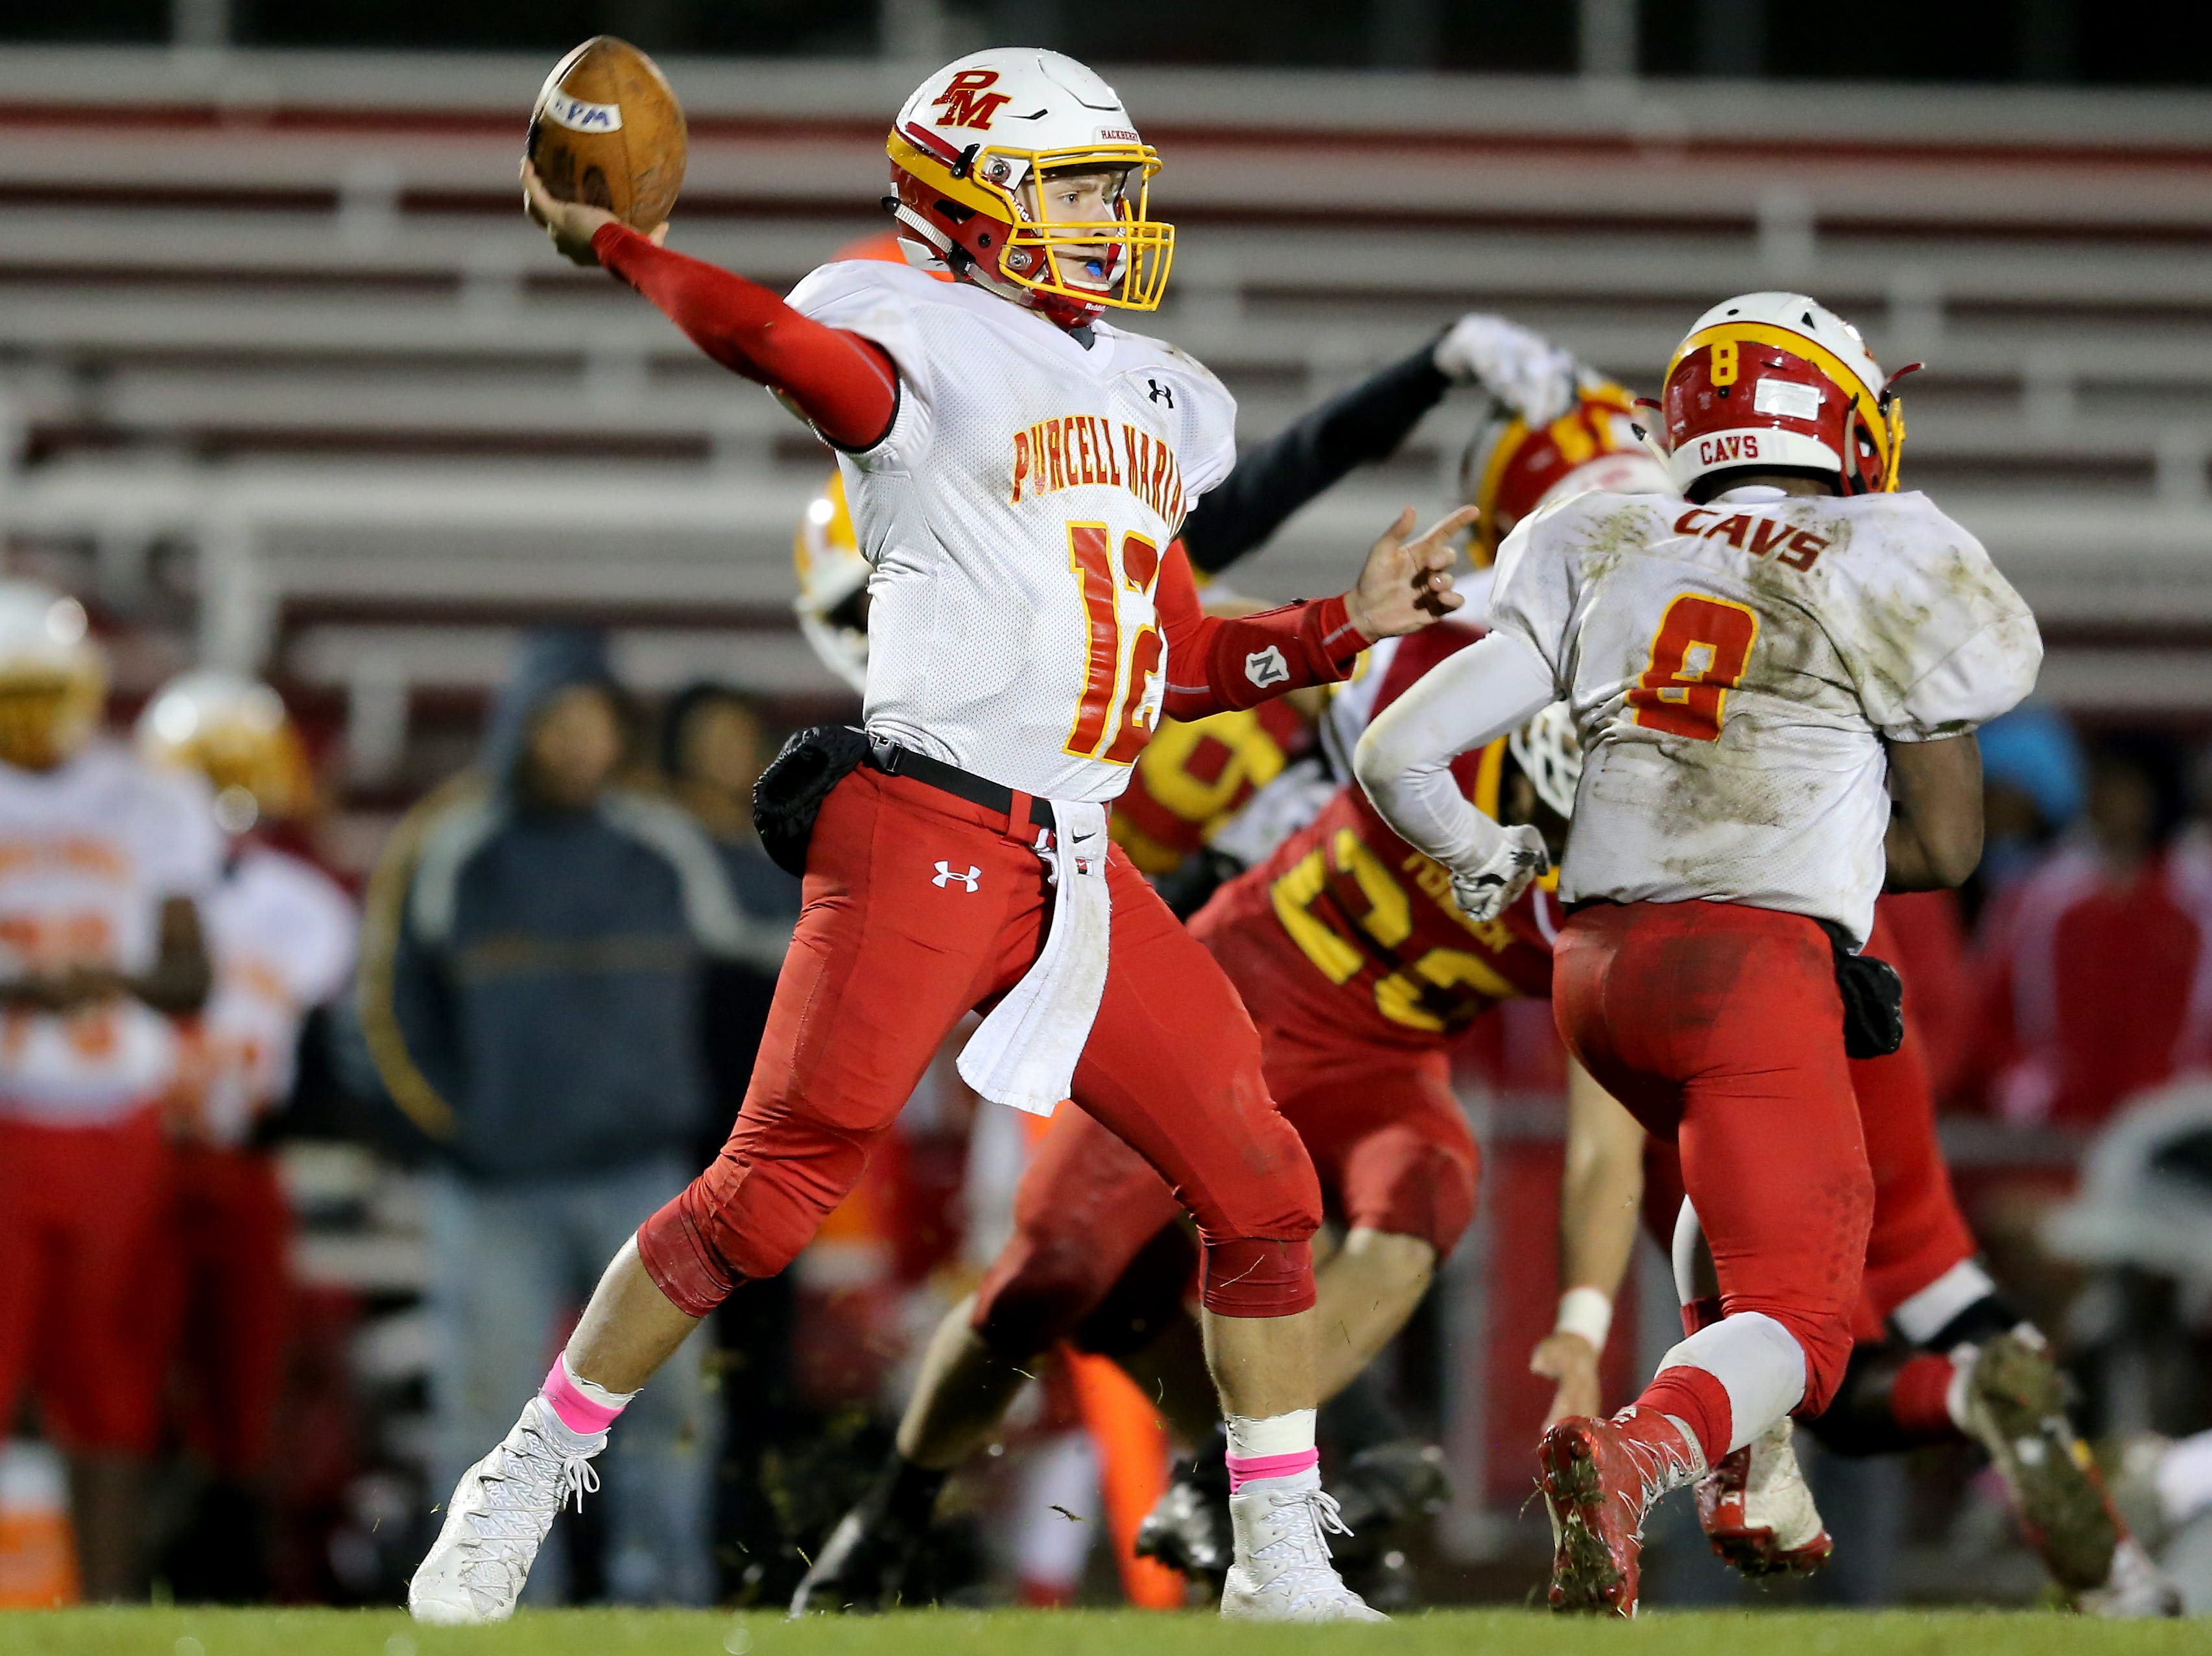 Purcell Marian quarterback Zach Hoover (12) throws in the third quarter during a high school football game between Purcell Marian and Bishop Fenwick, Friday, Oct. 12, 2018, at Bishop Fenwick High School in Middletown, Ohio.